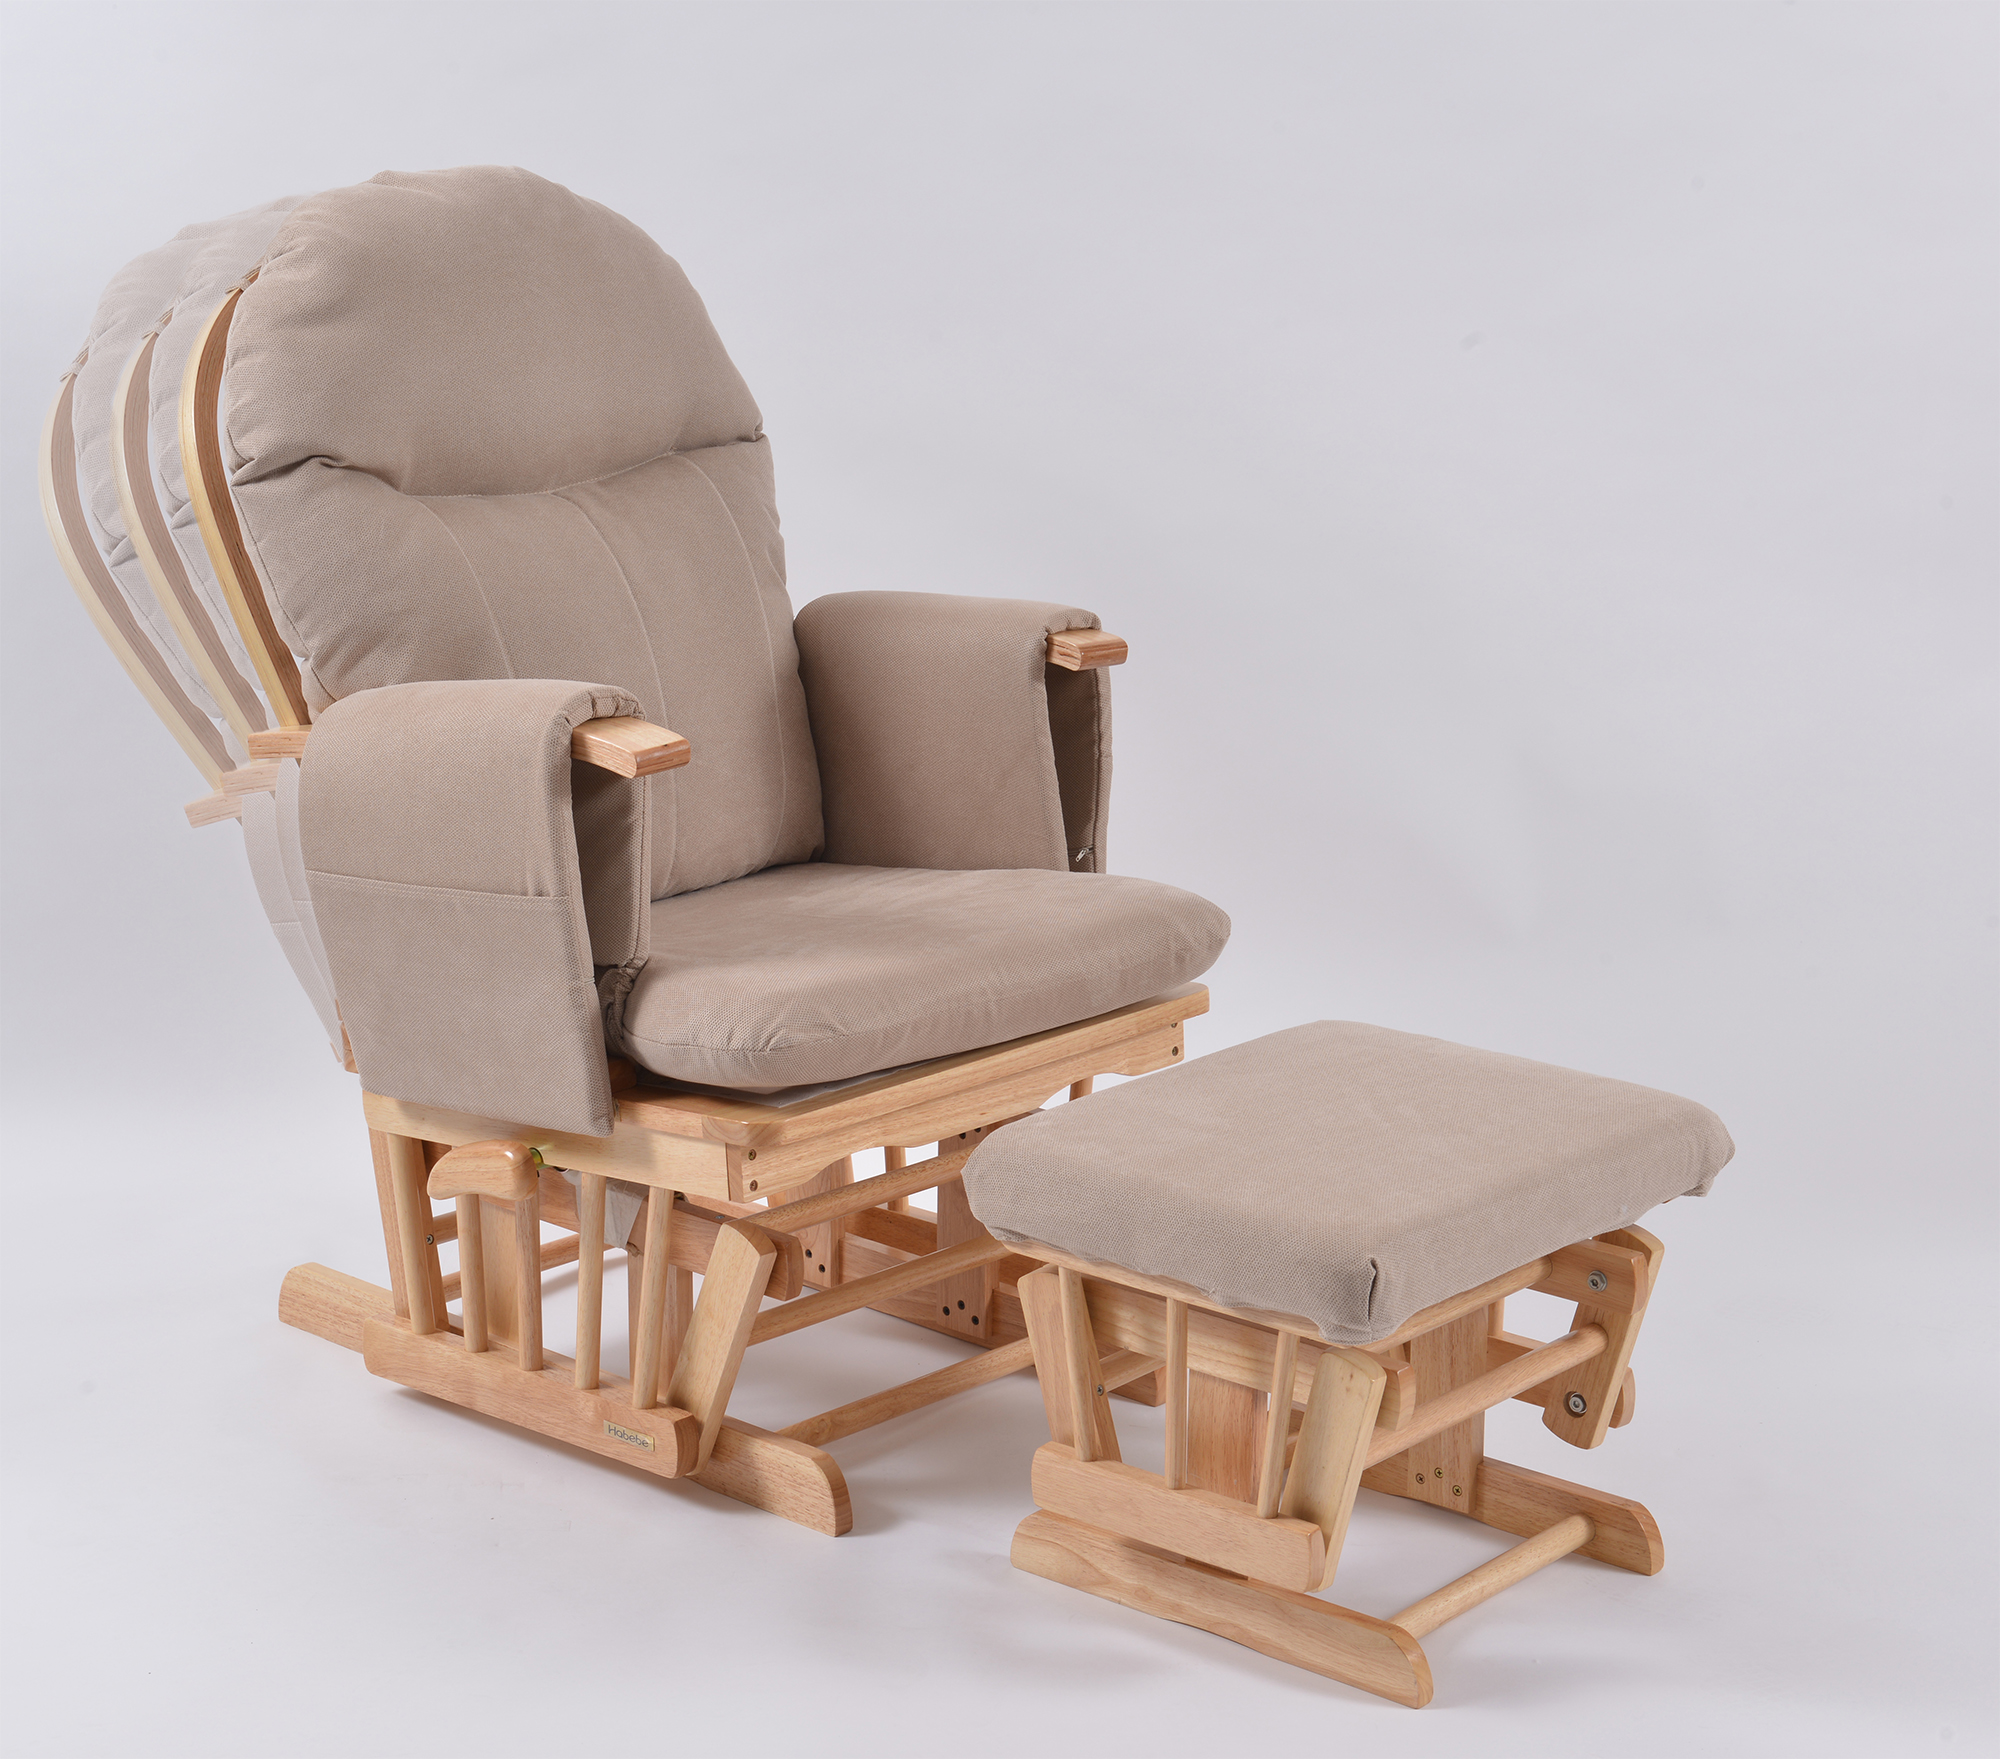 comfy nursing chair mini lounge chairs habebe glider and stool  beech wood beige washable